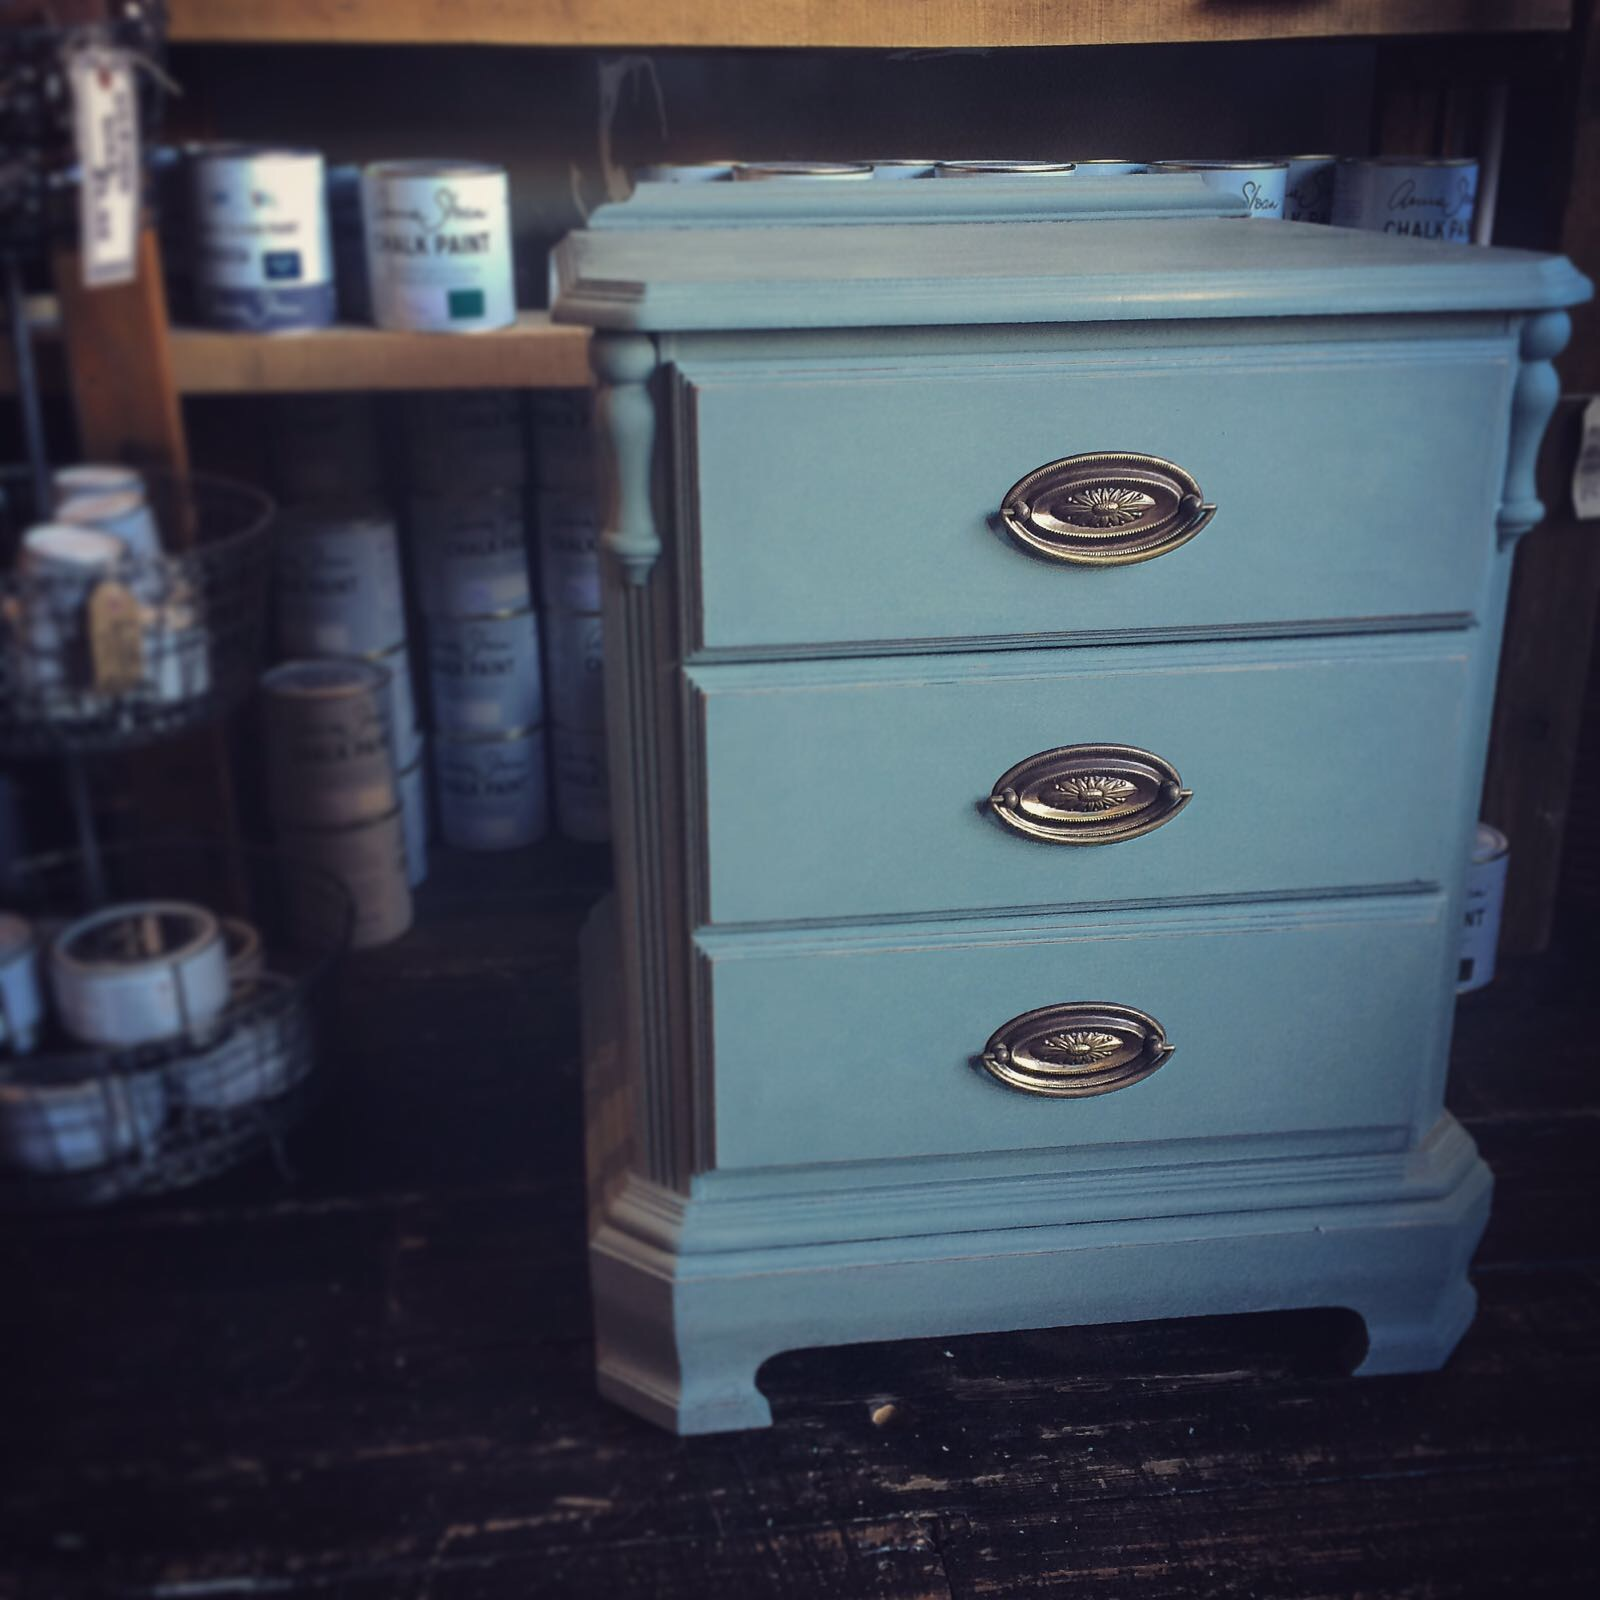 Pair of Ducal bedside cabinets in Duck Egg Blue £220